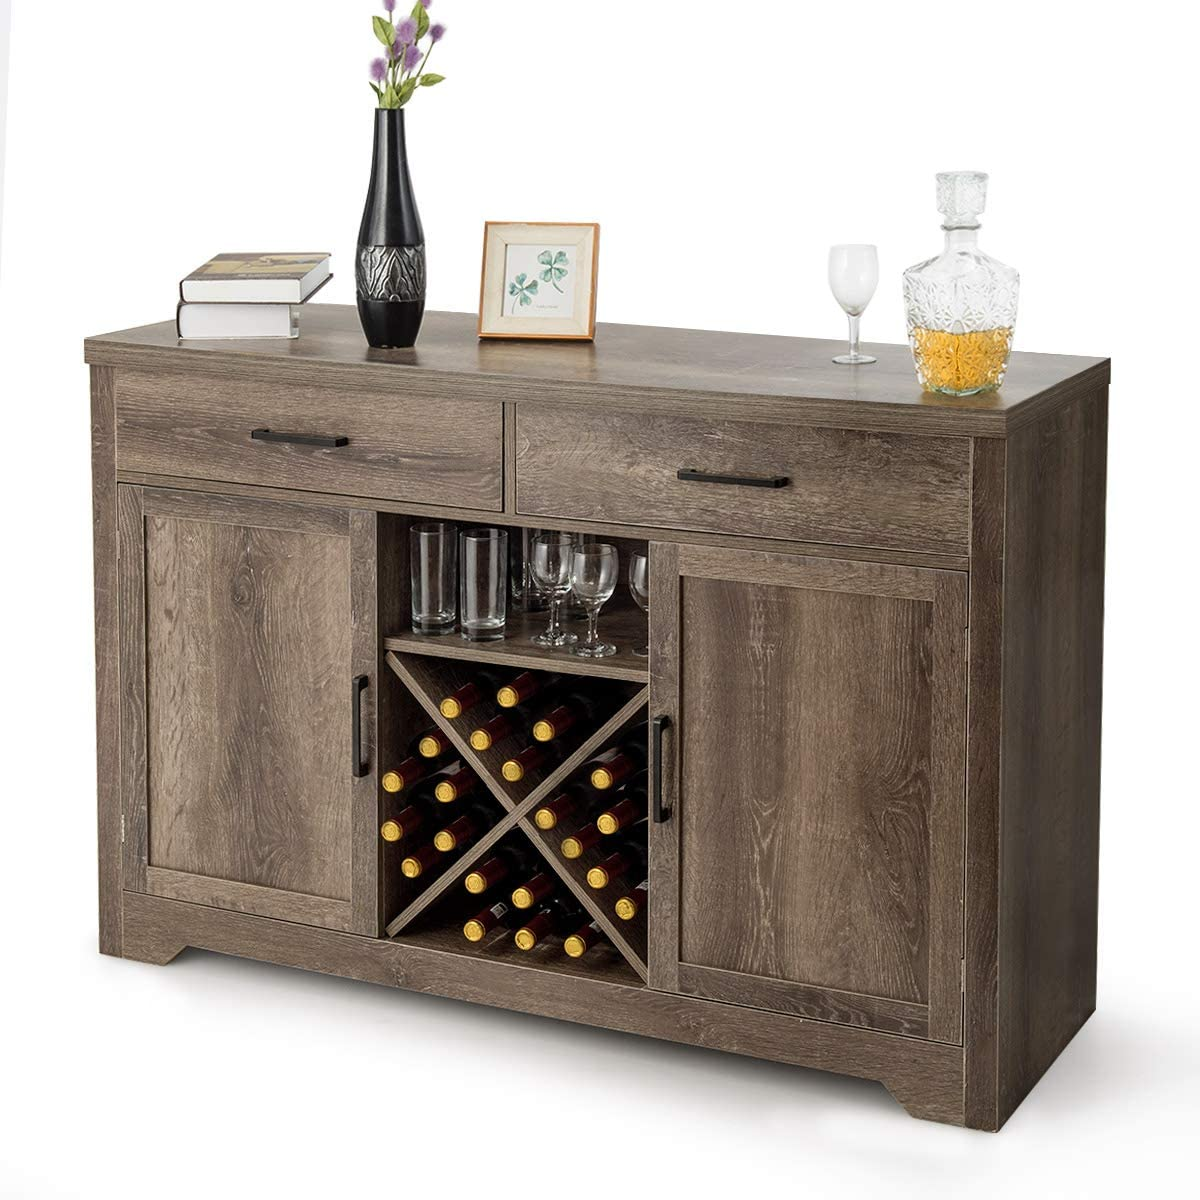 Giantex Buffet Sideboard Large Storage Cabinet with 2 Drawers 2 Cabinets Wine Shelf, Home Kitchen and Dining Room Furniture Console Table Natural